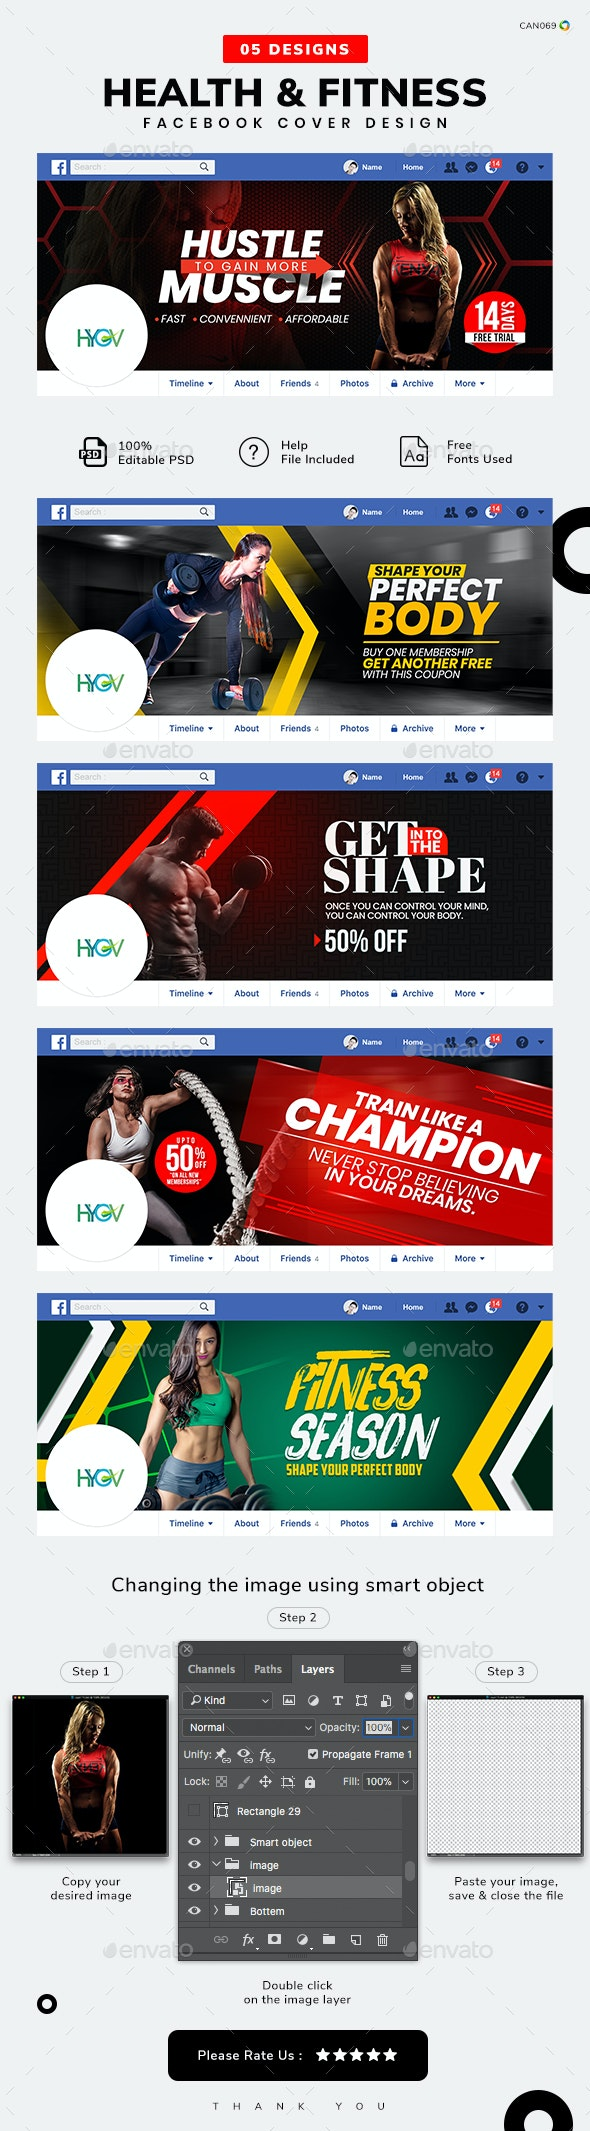 Health and Fitness Facebook Cover Templates - 05 Designs - Facebook Timeline Covers Social Media